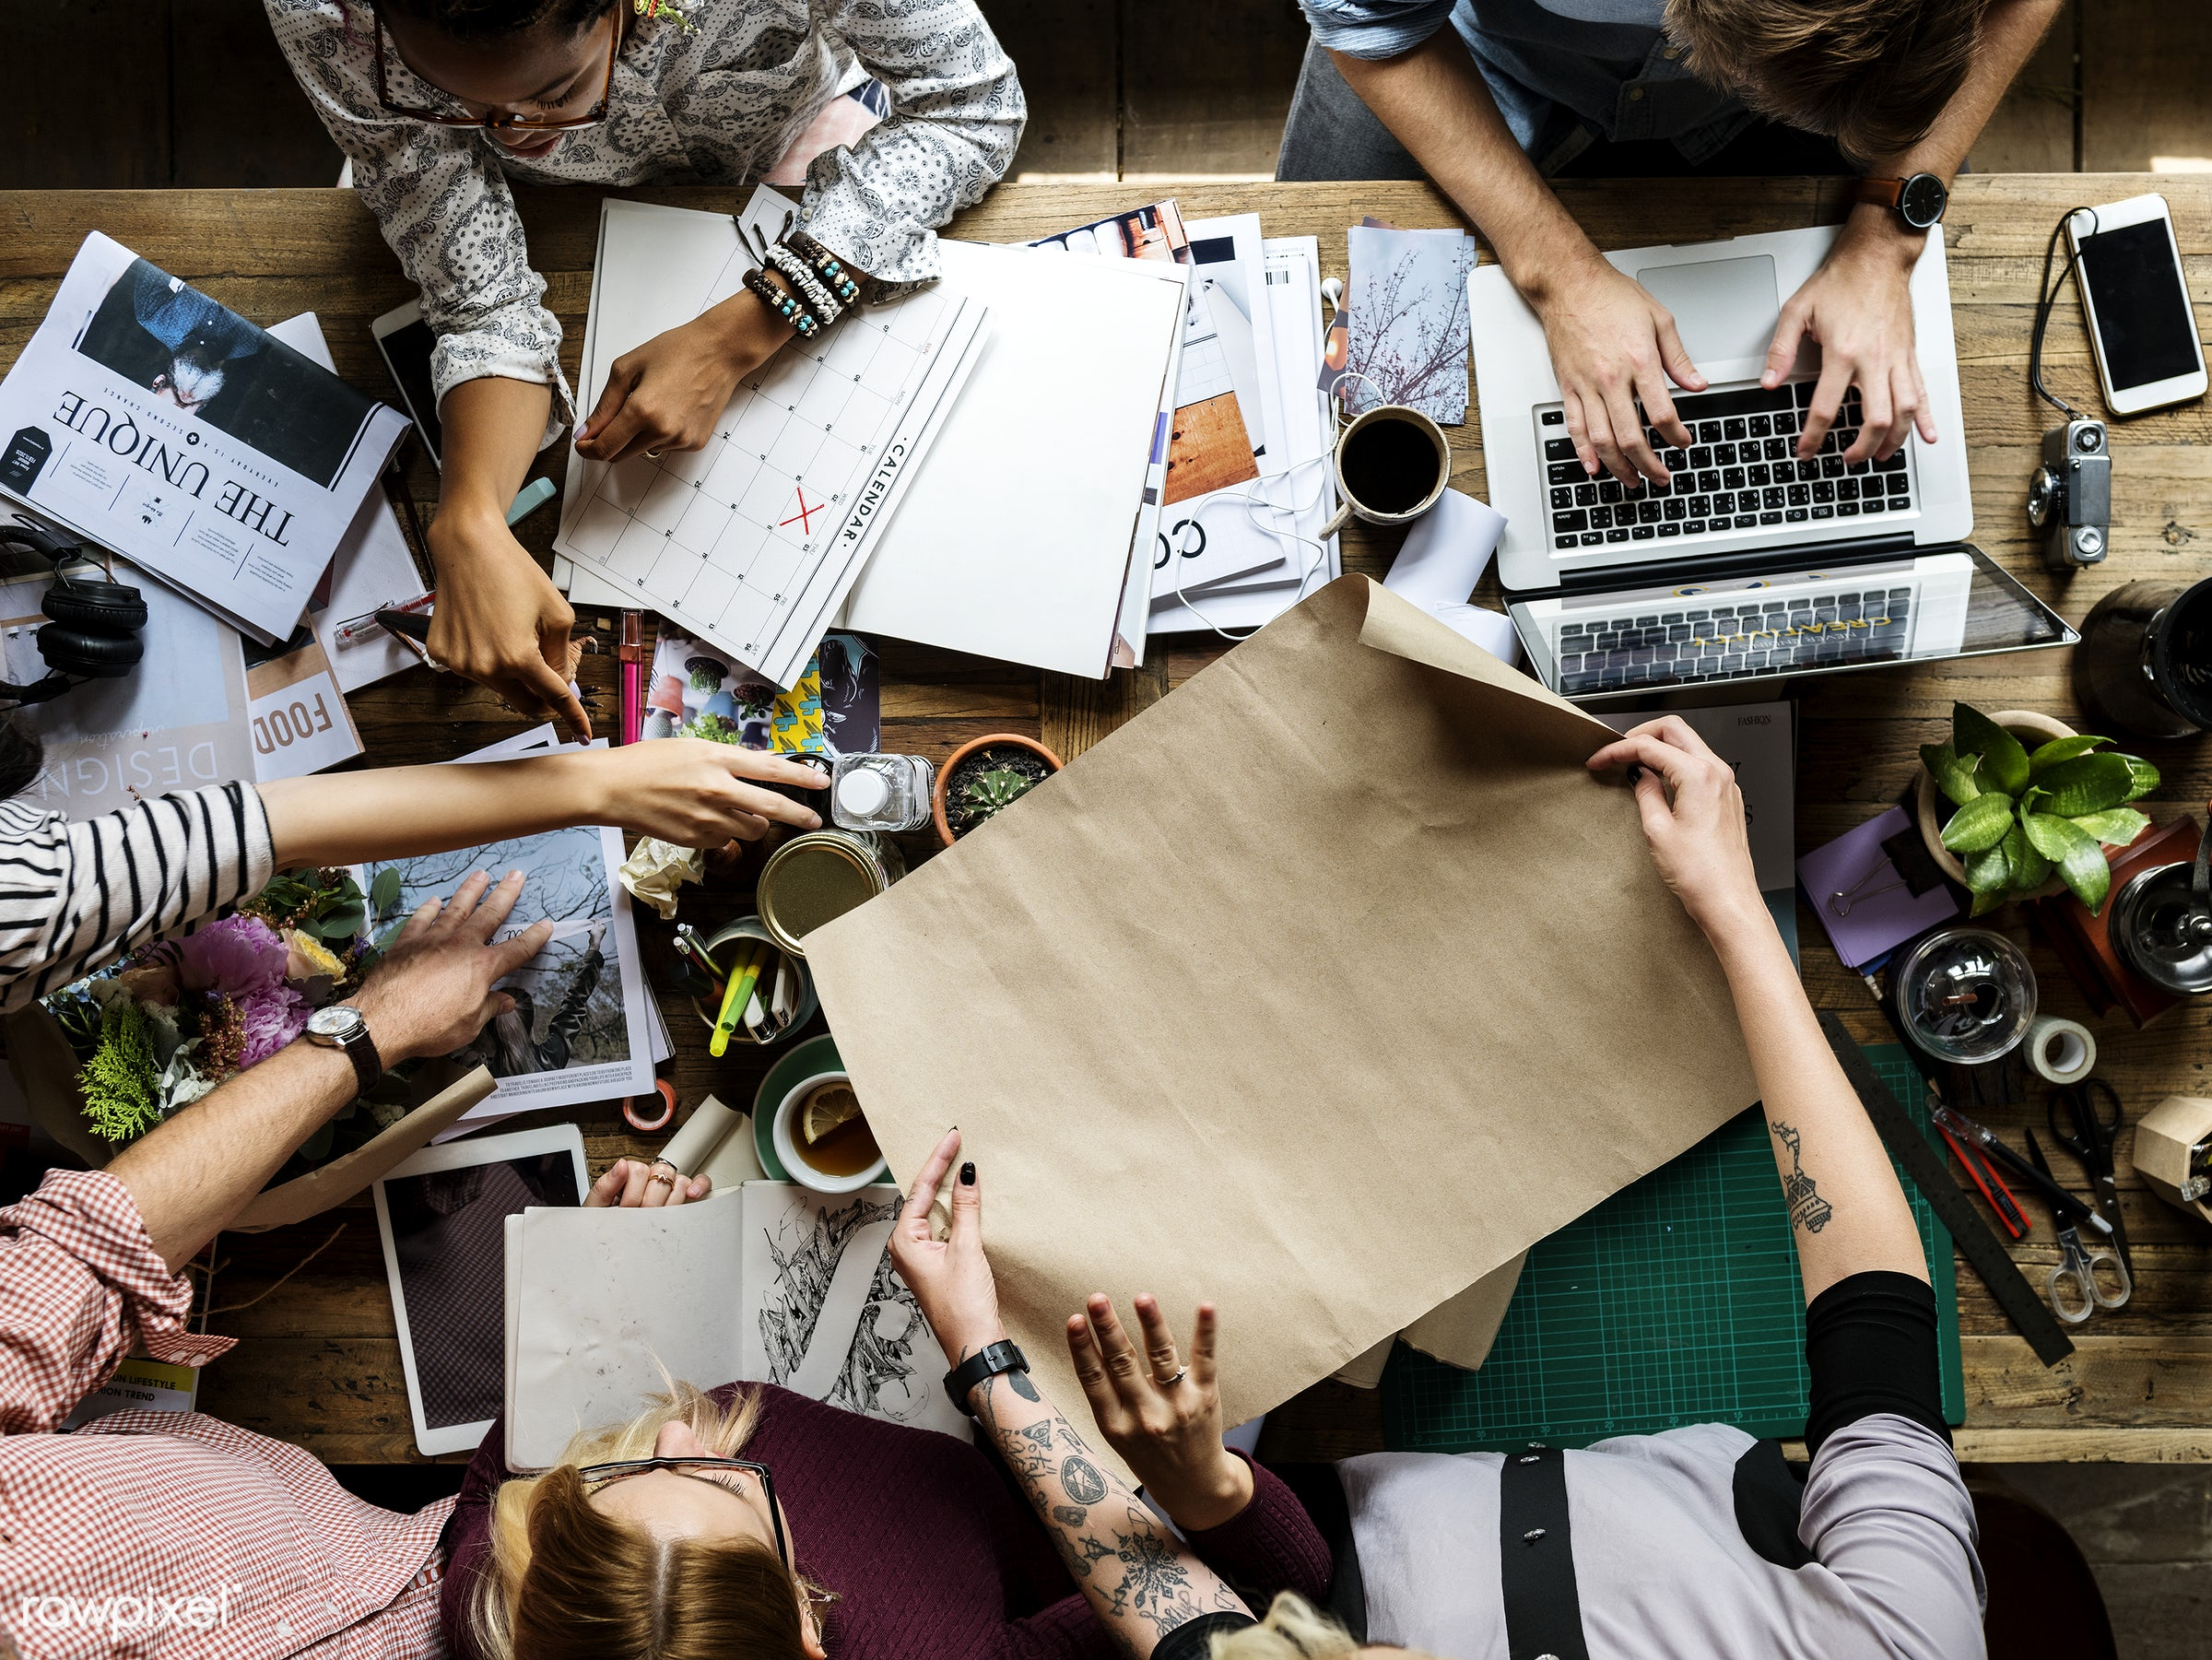 People Working Together at Office Workplace - magazine, desk, mockup, aerial view, art, banner, blank, brainstorm, business...